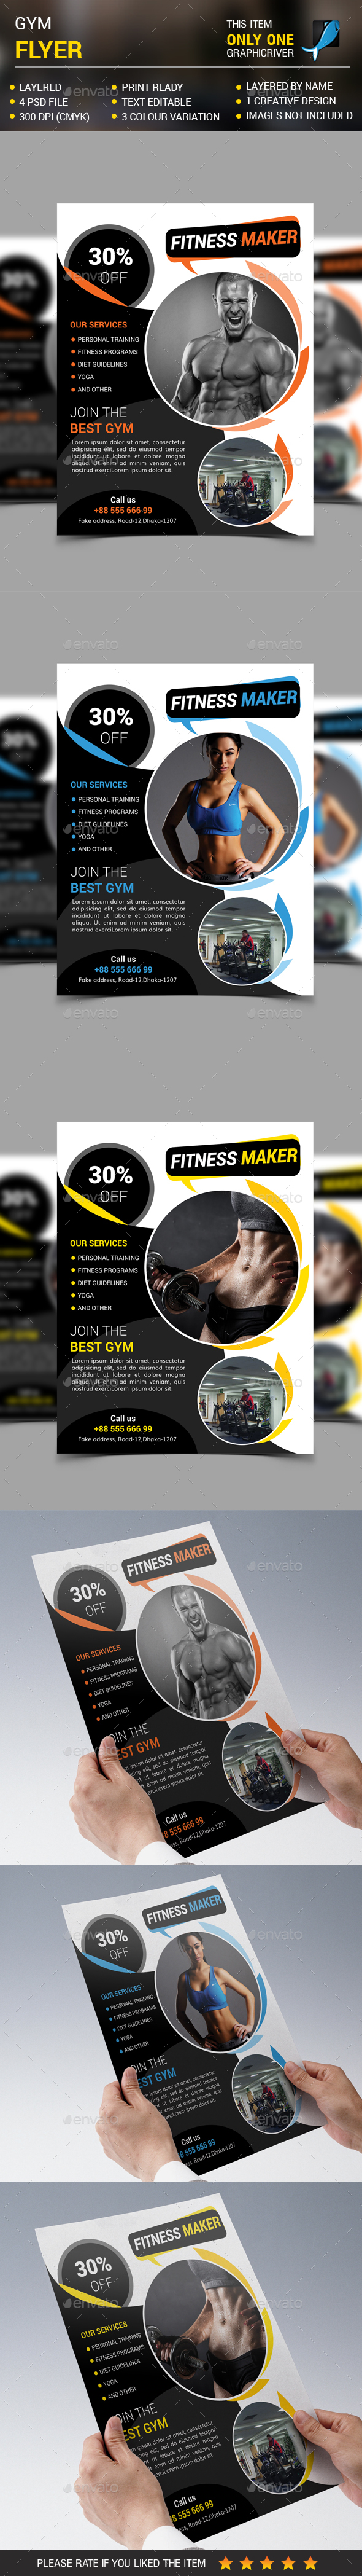 Fitness & Gym Flyer vol 4 - Commerce Flyers